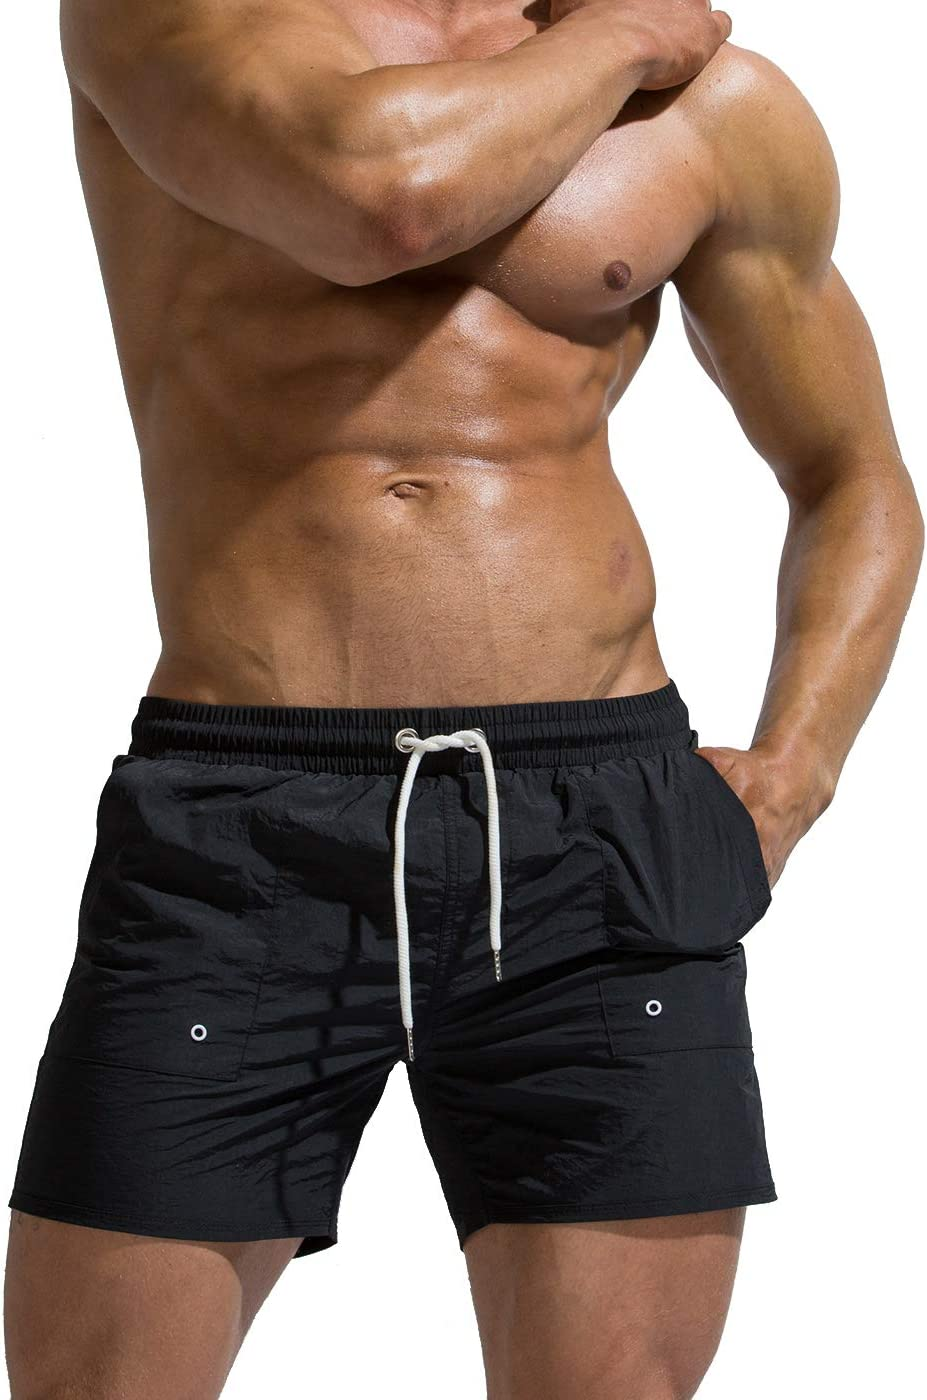 TOFERN Solid Color Beach Board Shorts Adjustable Drawstring Men Athletic Shorts Bathing Suit with Mesh Lining